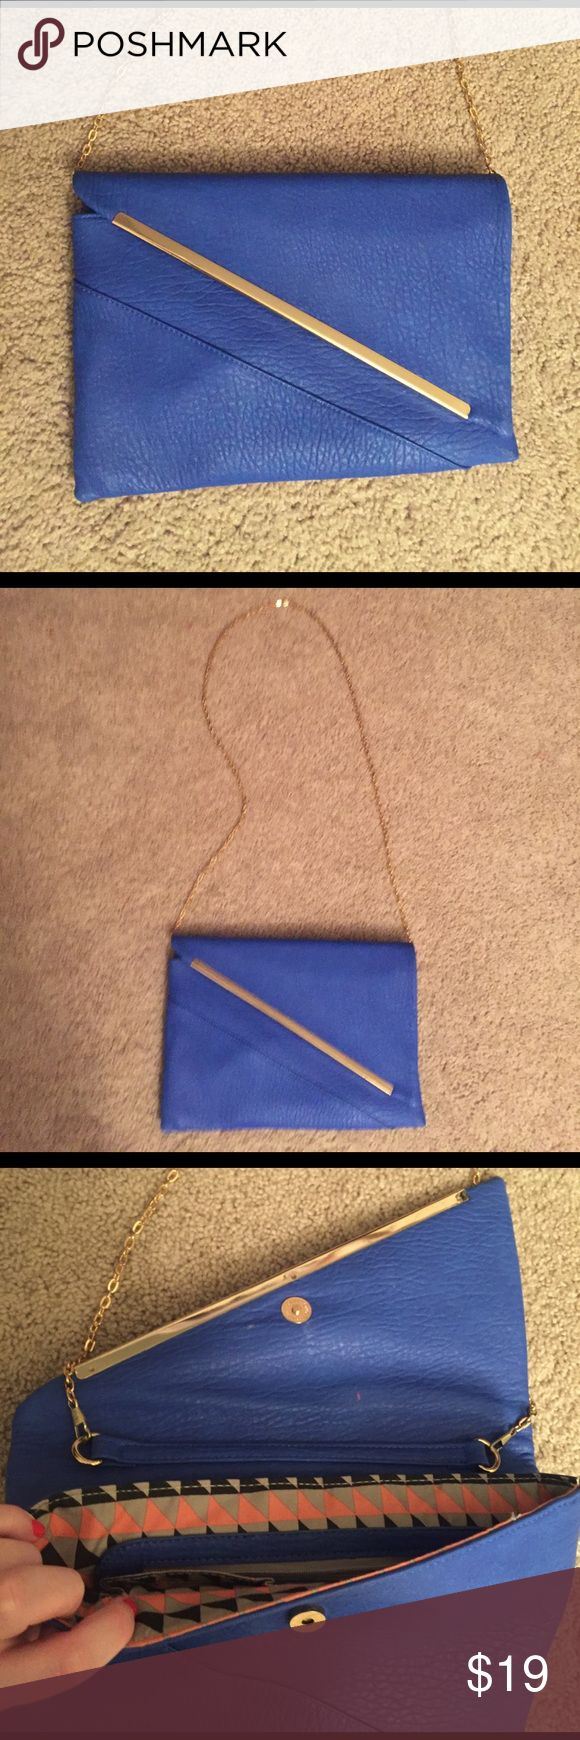 Royal blue cross body Only used a handful of times, gold chain, second to last picture has my wallet (NOT for sale) just to show how big clutch is Bags Crossbody Bags